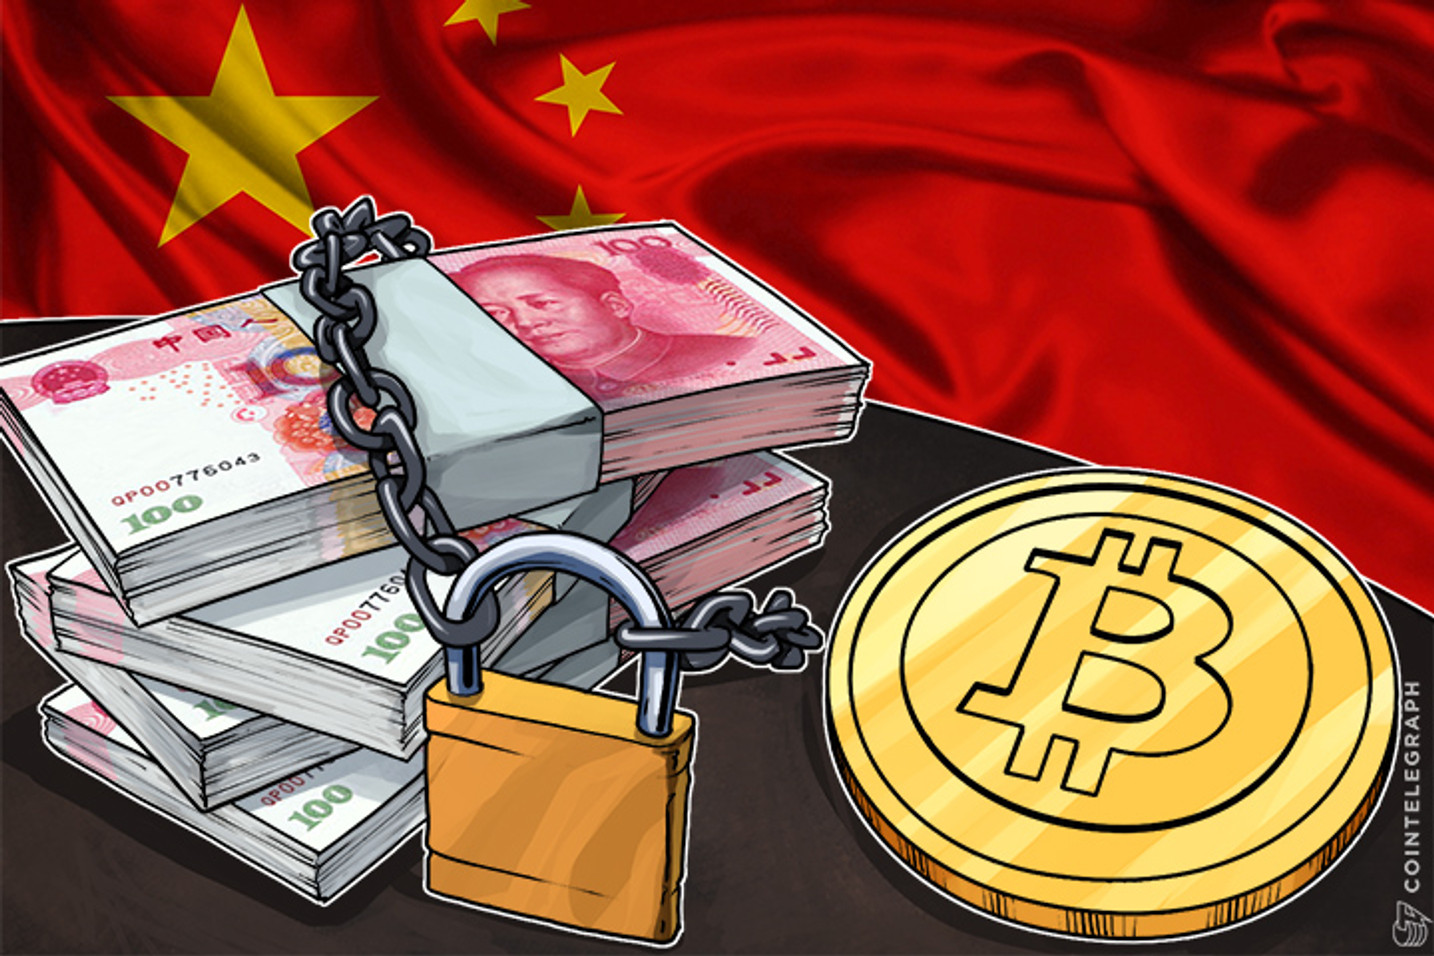 China Imposes New Capital Controls; Bitcoin Price Optimistic